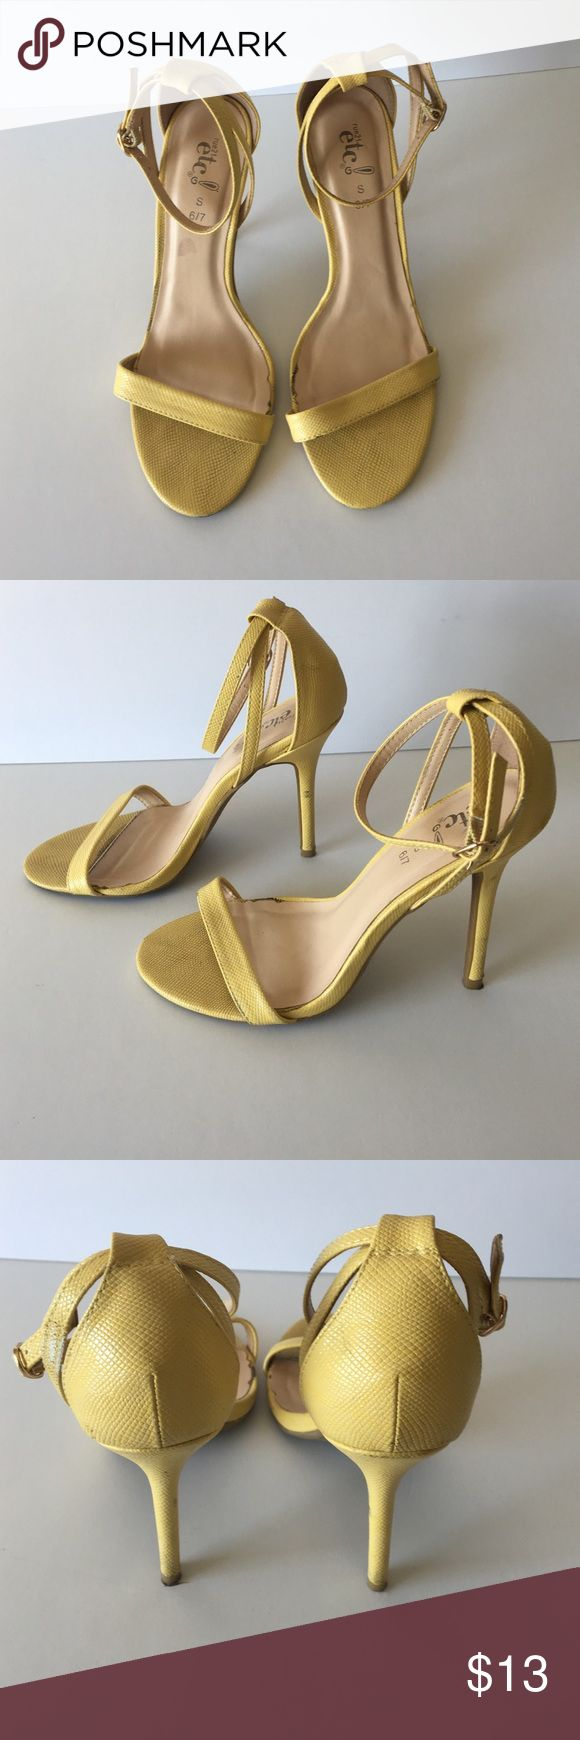 Rue 21 Yellow Heel Muted yellow heeled sandals by Rue 21. Size 6/7 Small. Heel is 4 inch. Has some wear on ankle straps as shown in photos. Still a very nice shoe 👣 Rue 21 Shoes Sandals